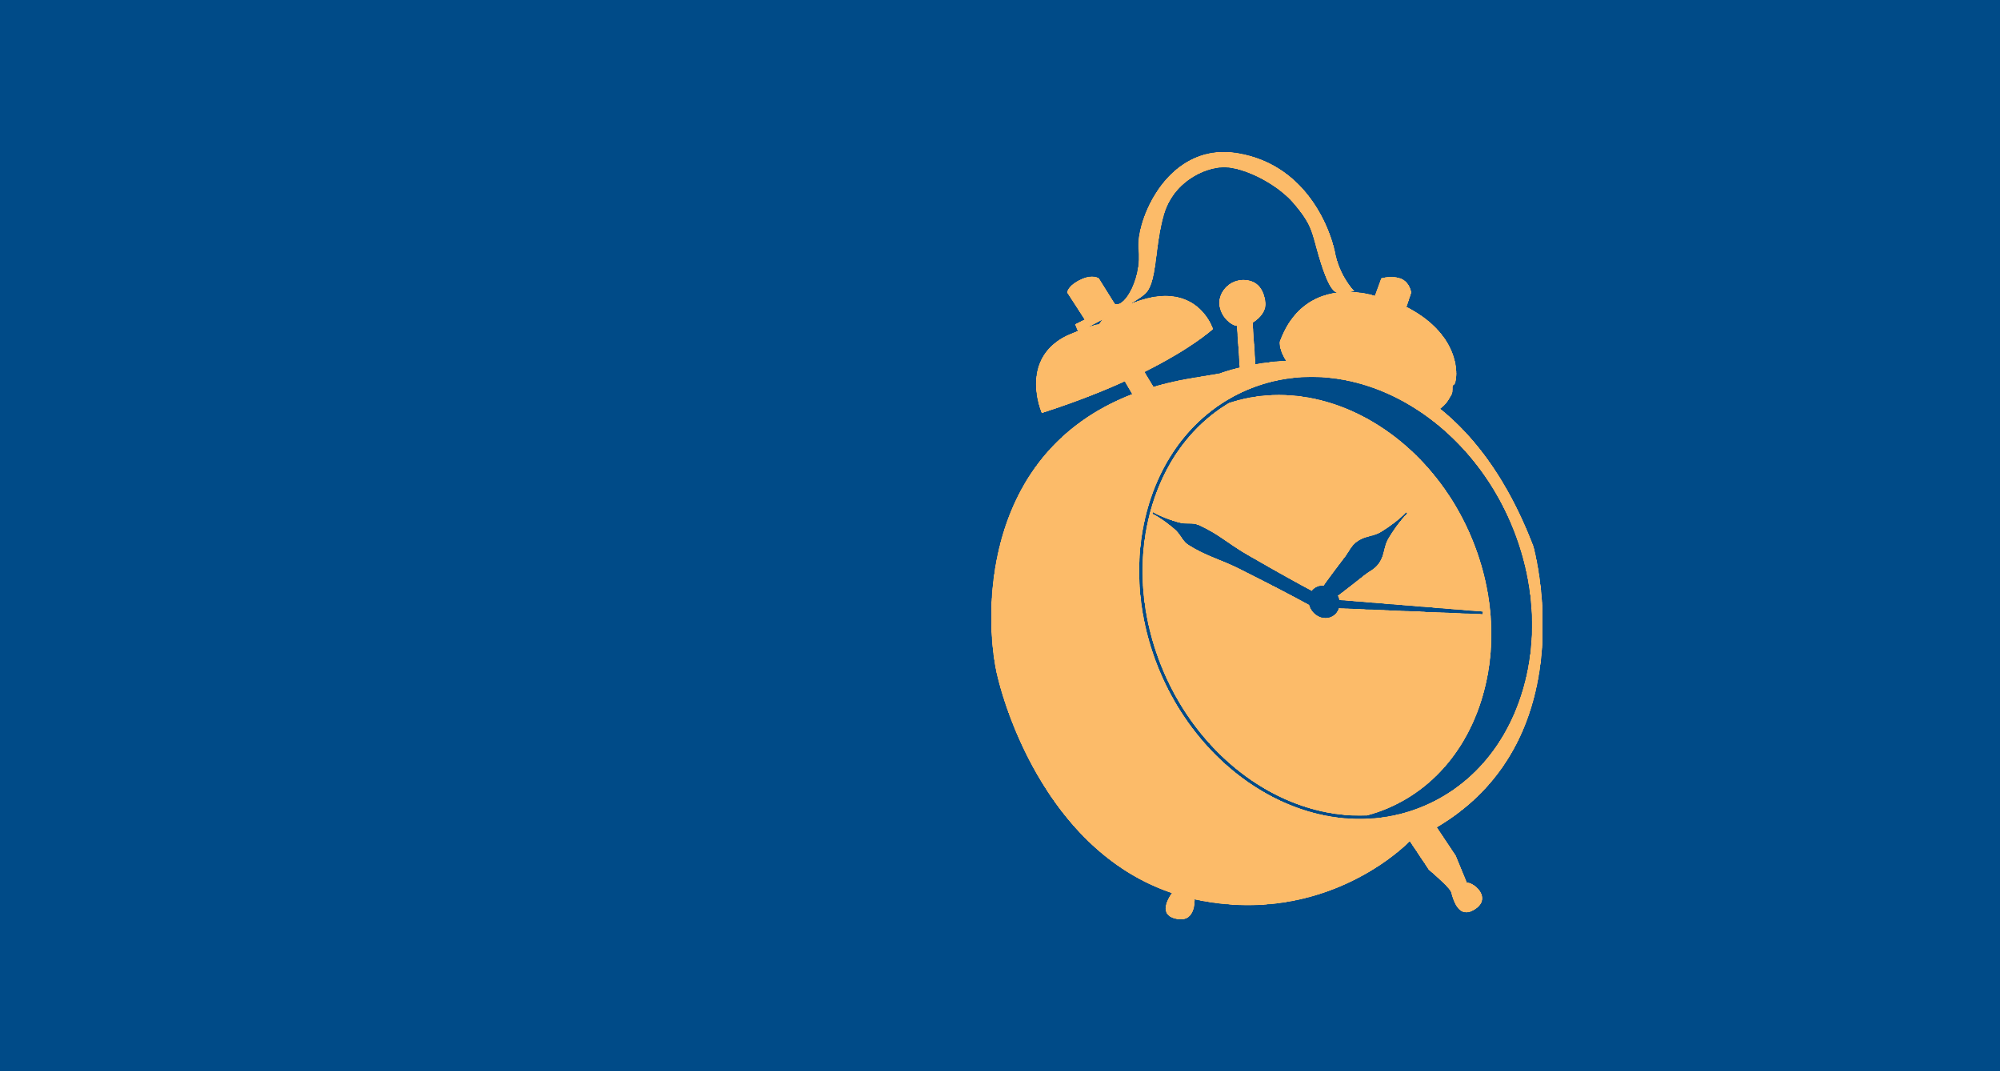 zero hour contracts Workers on zero hours contracts are entitled to receive zero hour contract holiday pay this article outlines calculations to work out their entitlement.